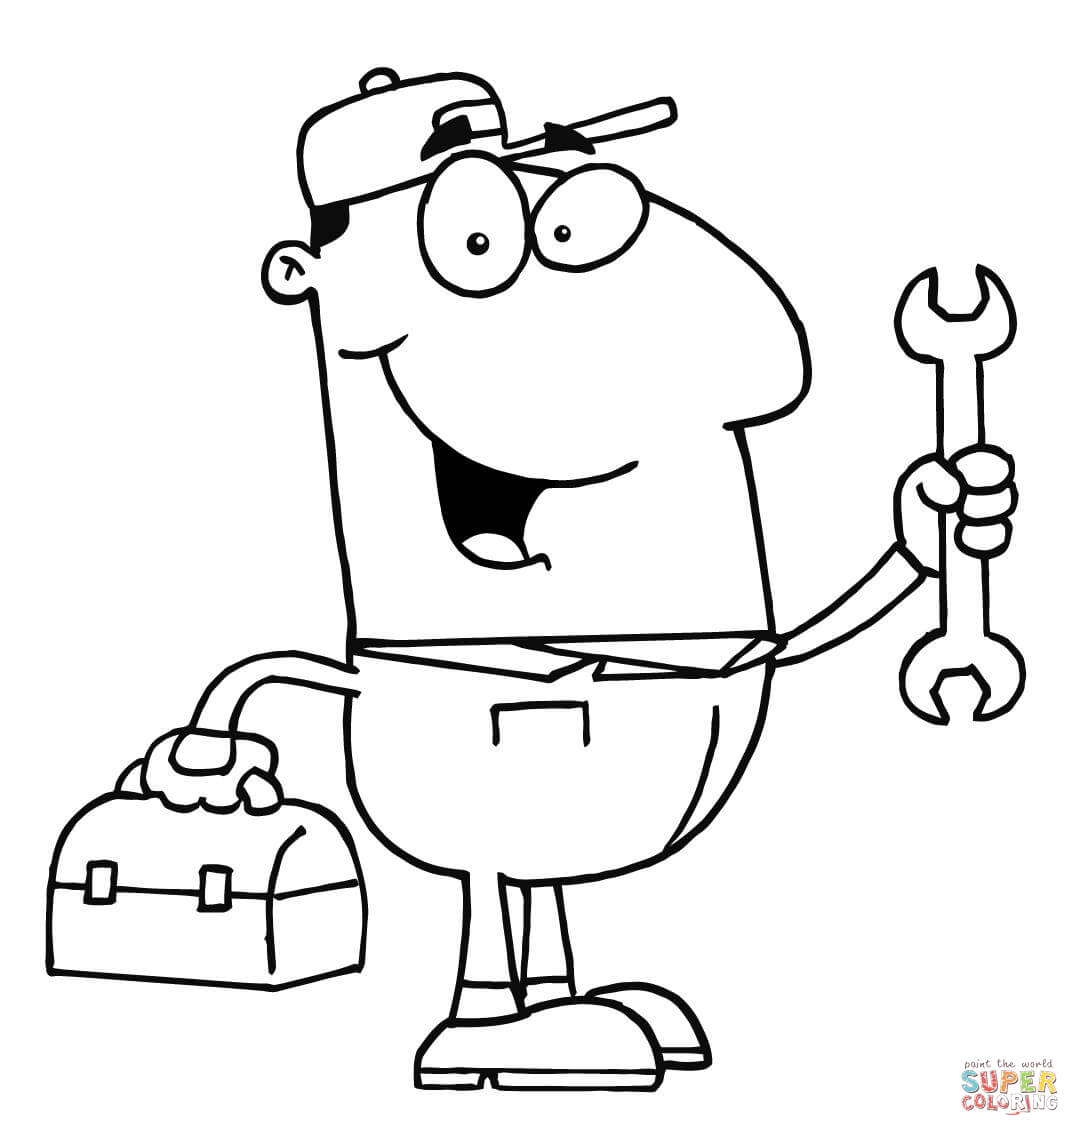 13570 mechanic clipart black and white free black for Mechanic coloring pages